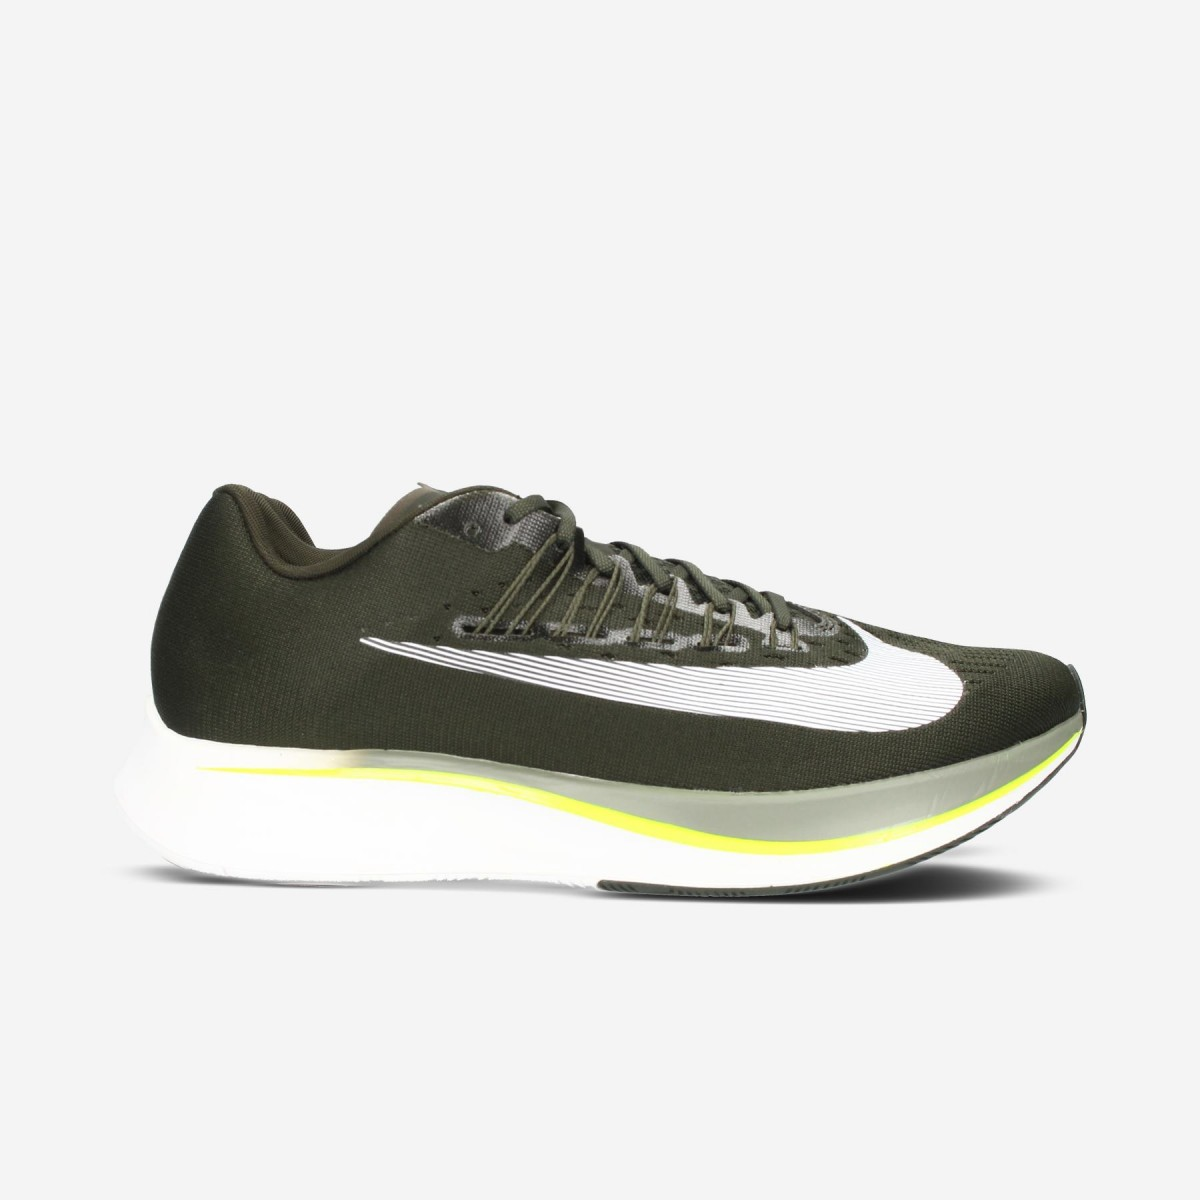 Nike Zoom Fly Verde/Bianche